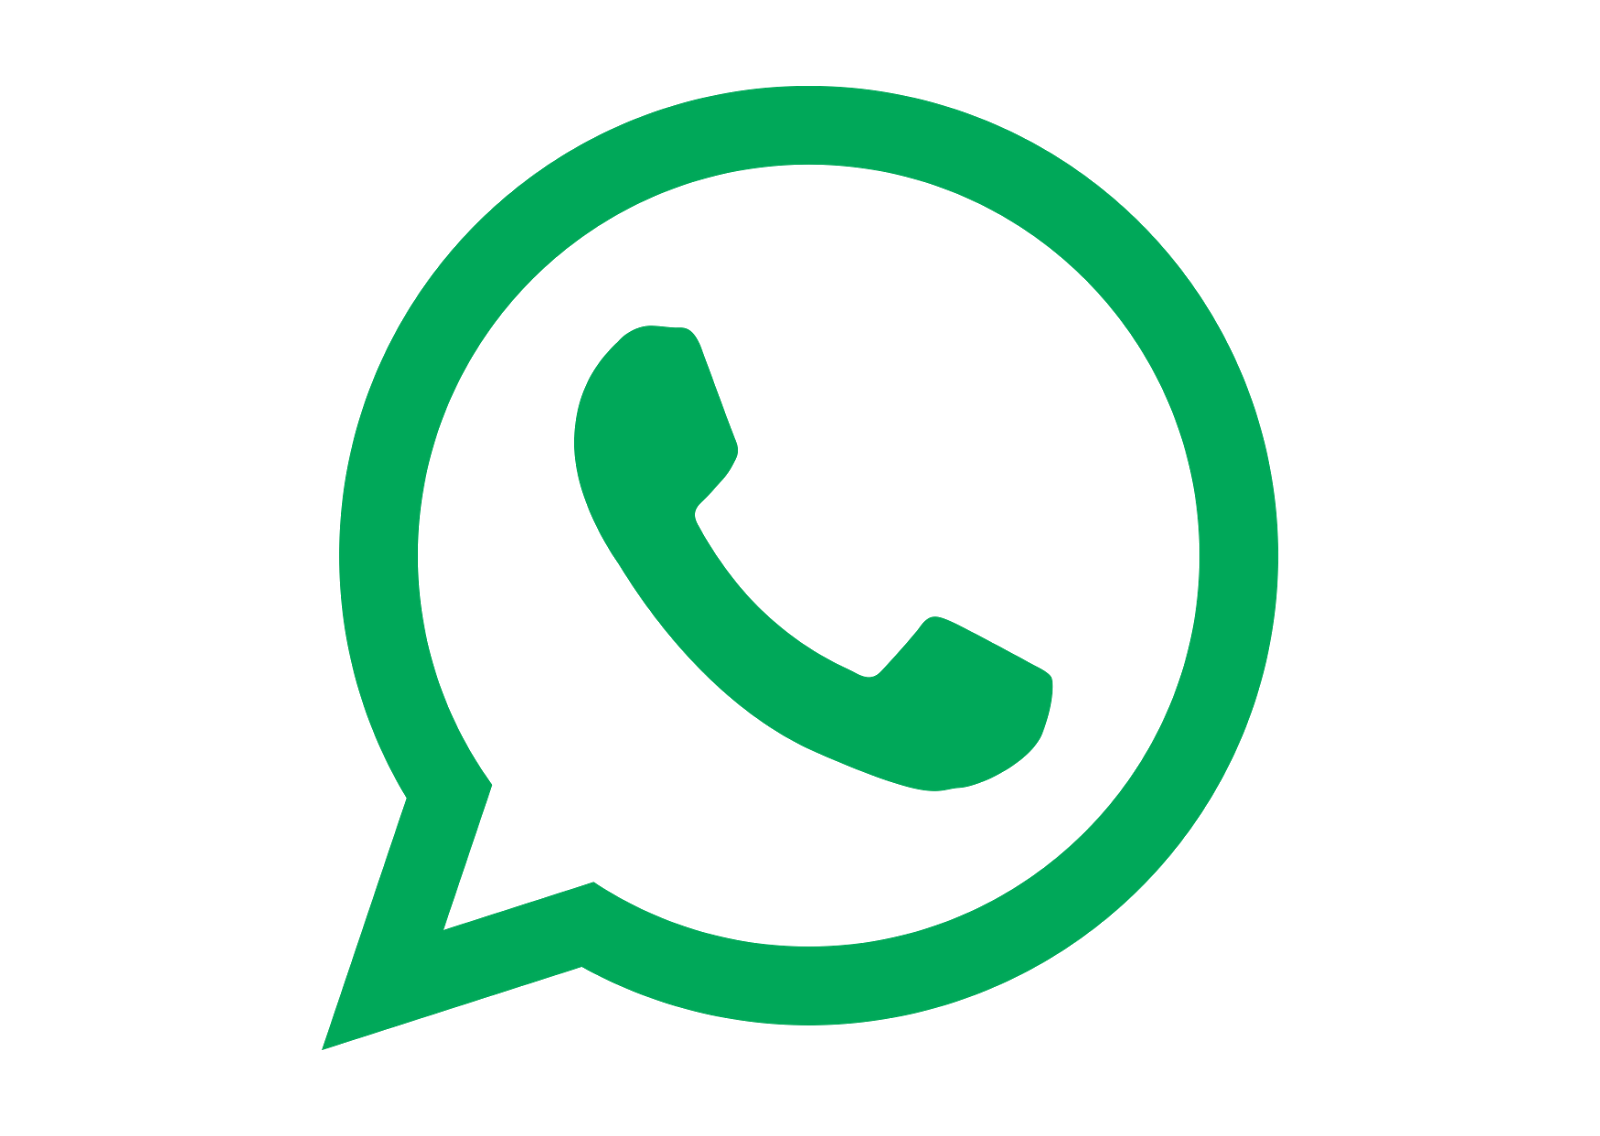 /automating-whatsapp-web-with-alright-and-python-e6i935a1 feature image